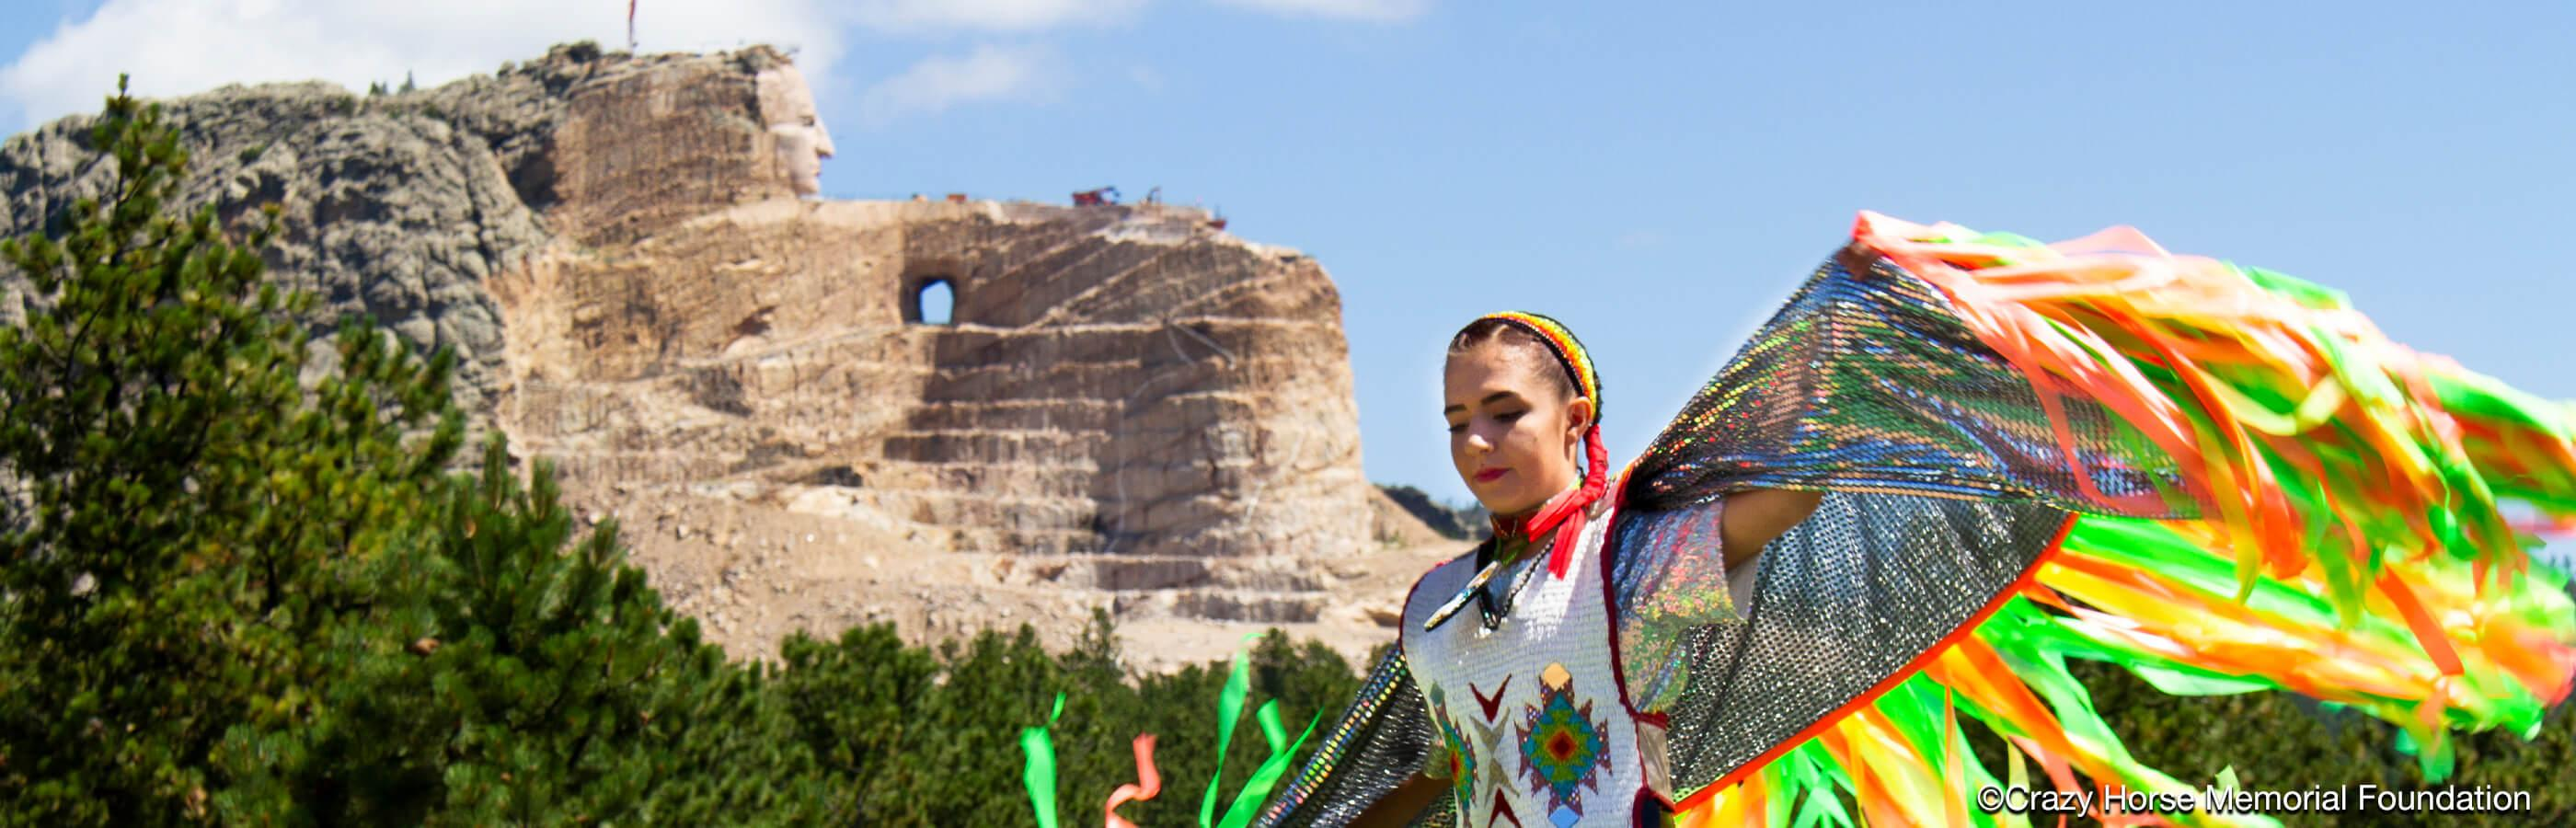 Dancer At Crazy Horse Memorial